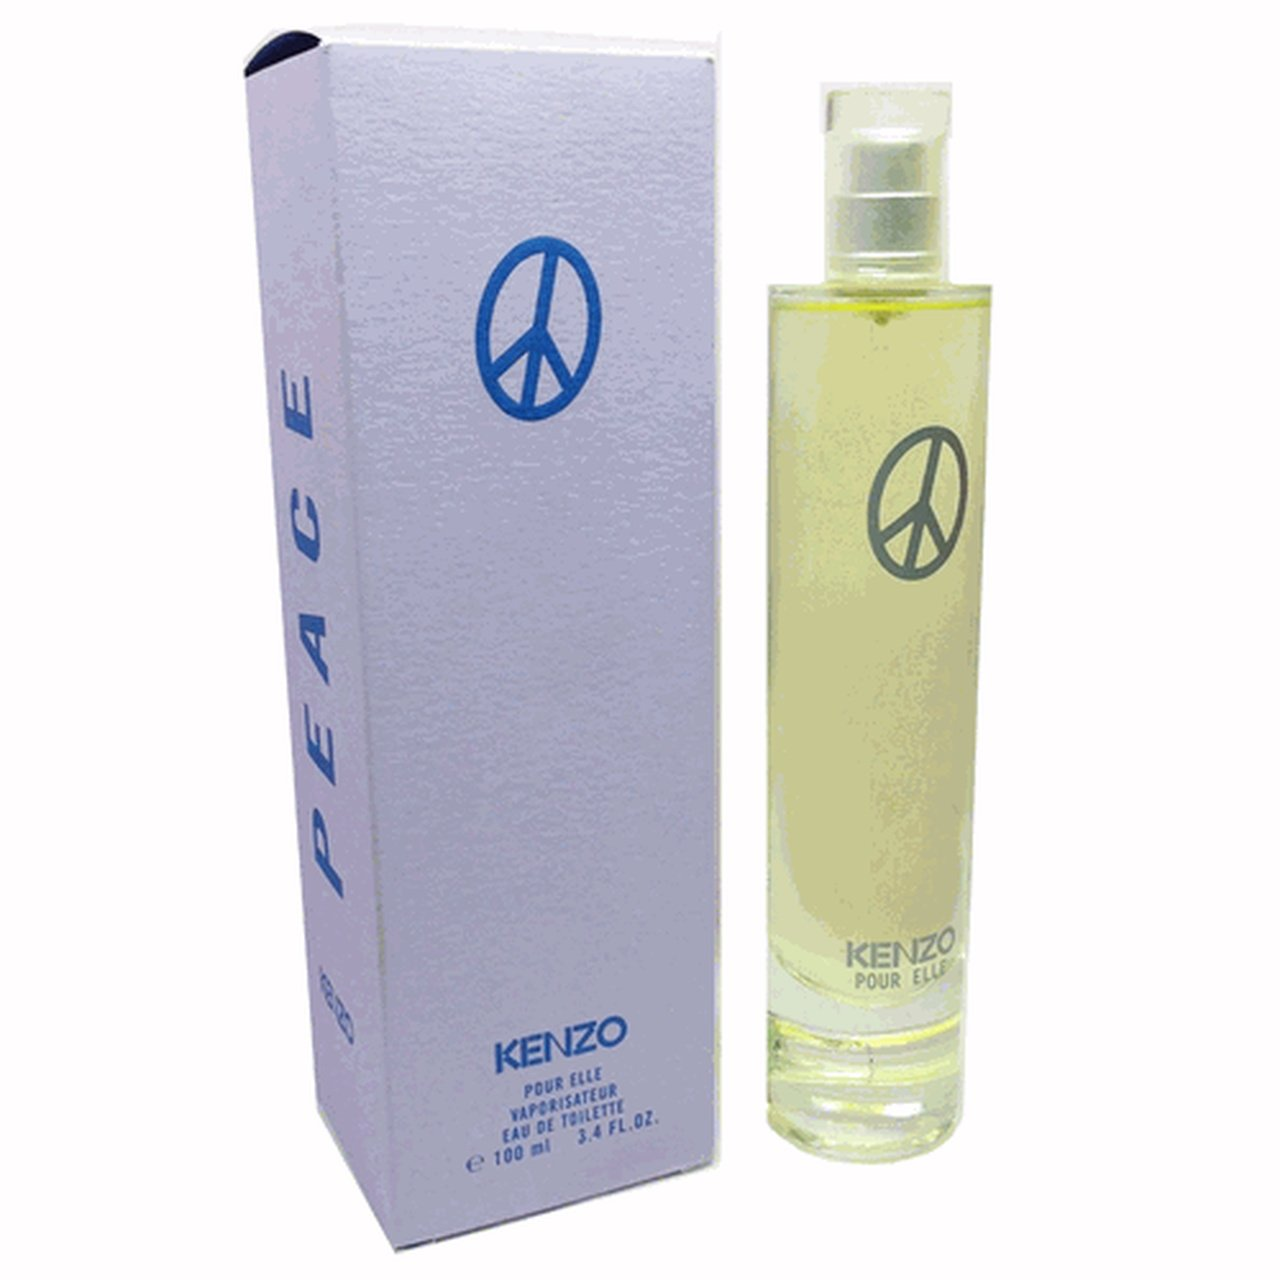 100 For Women Spray De Ml Time Peace Kenzo Elle Toilette Pour Eau DE2IH9